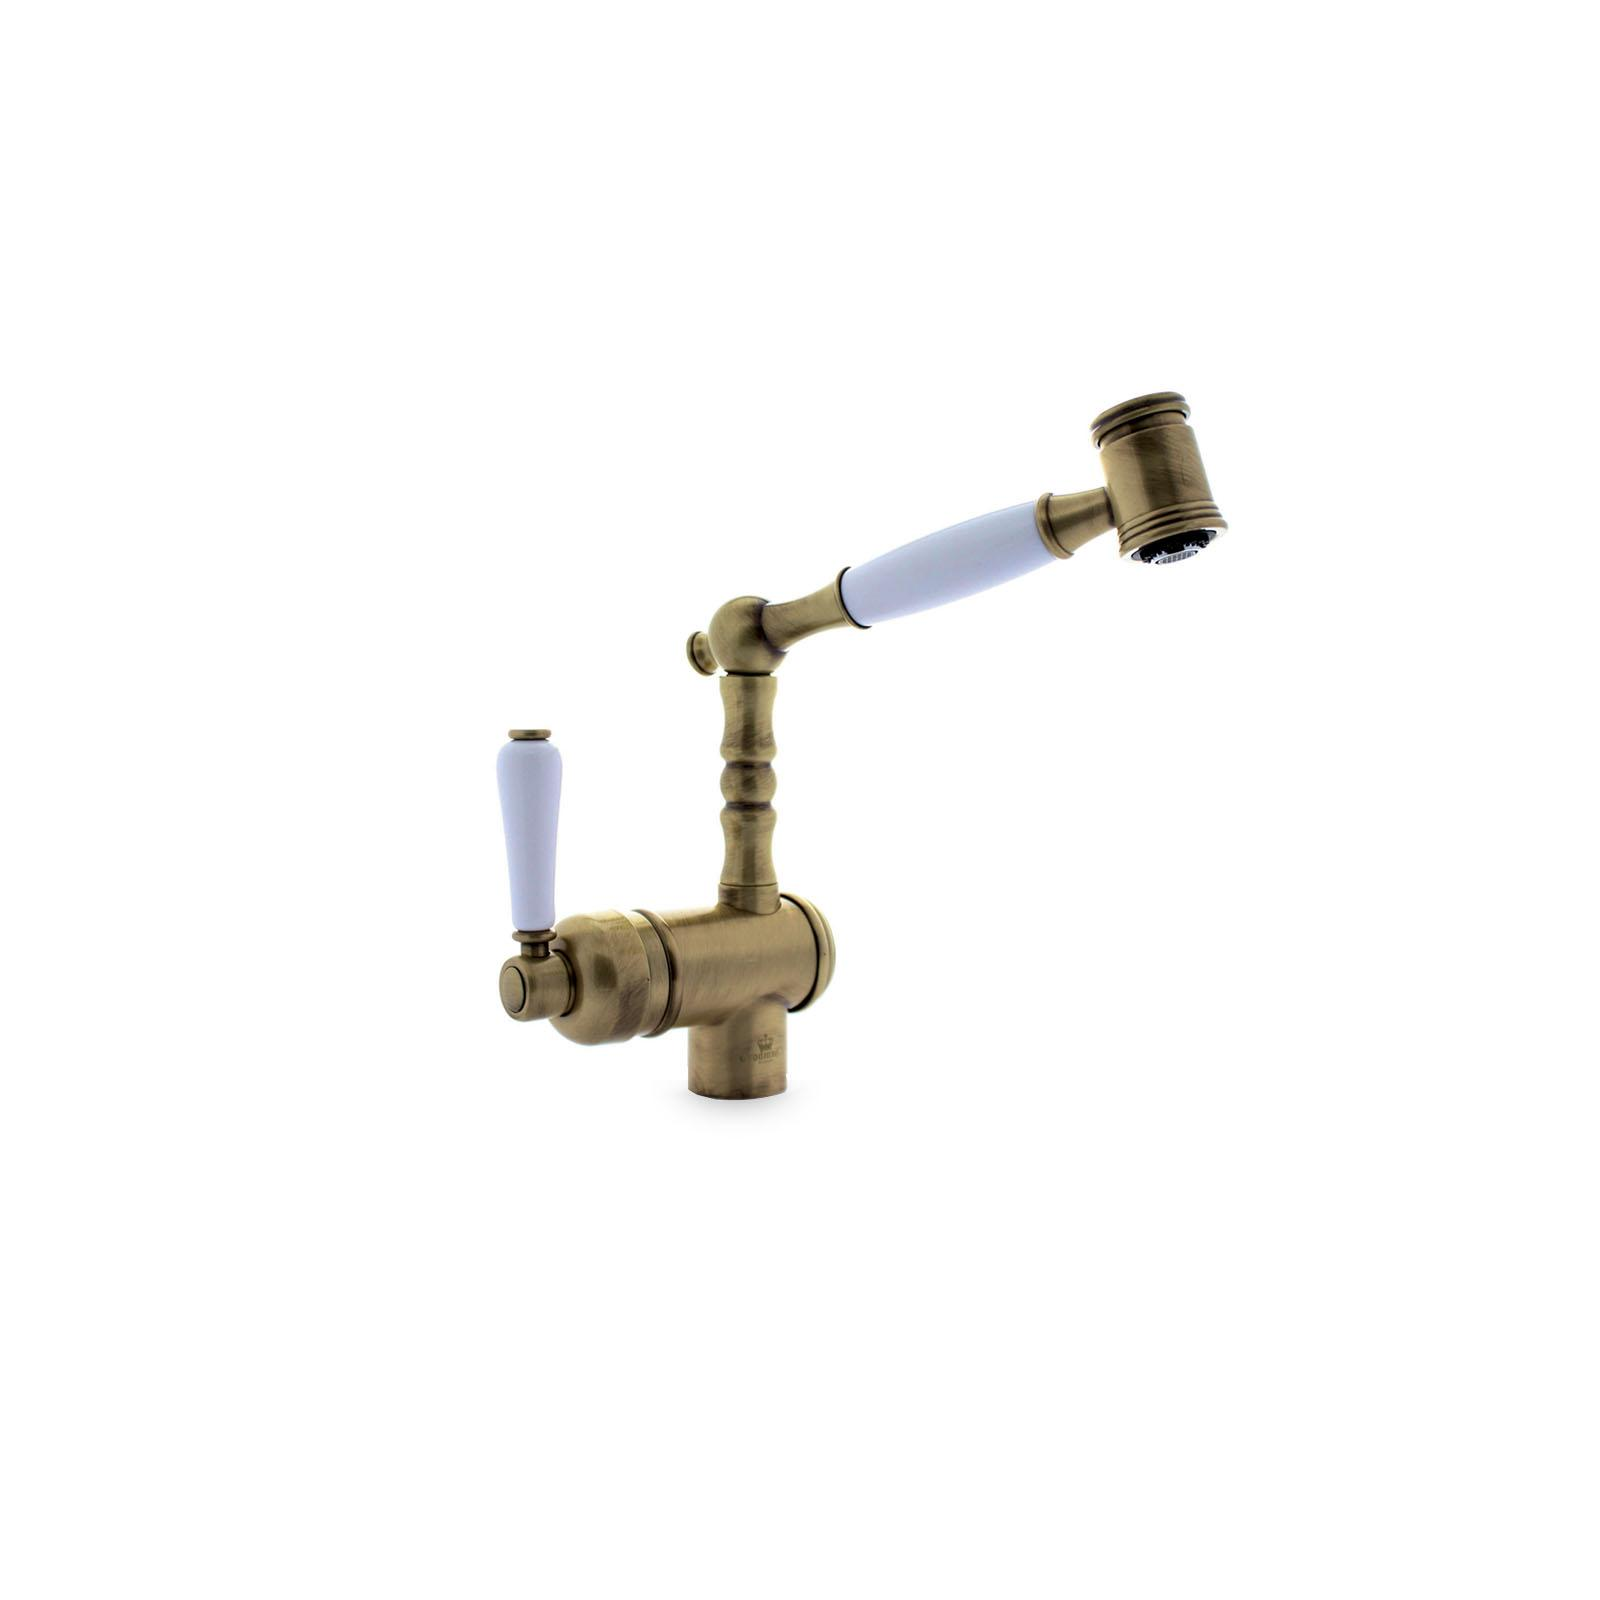 High-quality single lever tap Louise - pull out spray - Bronze - ambience 2